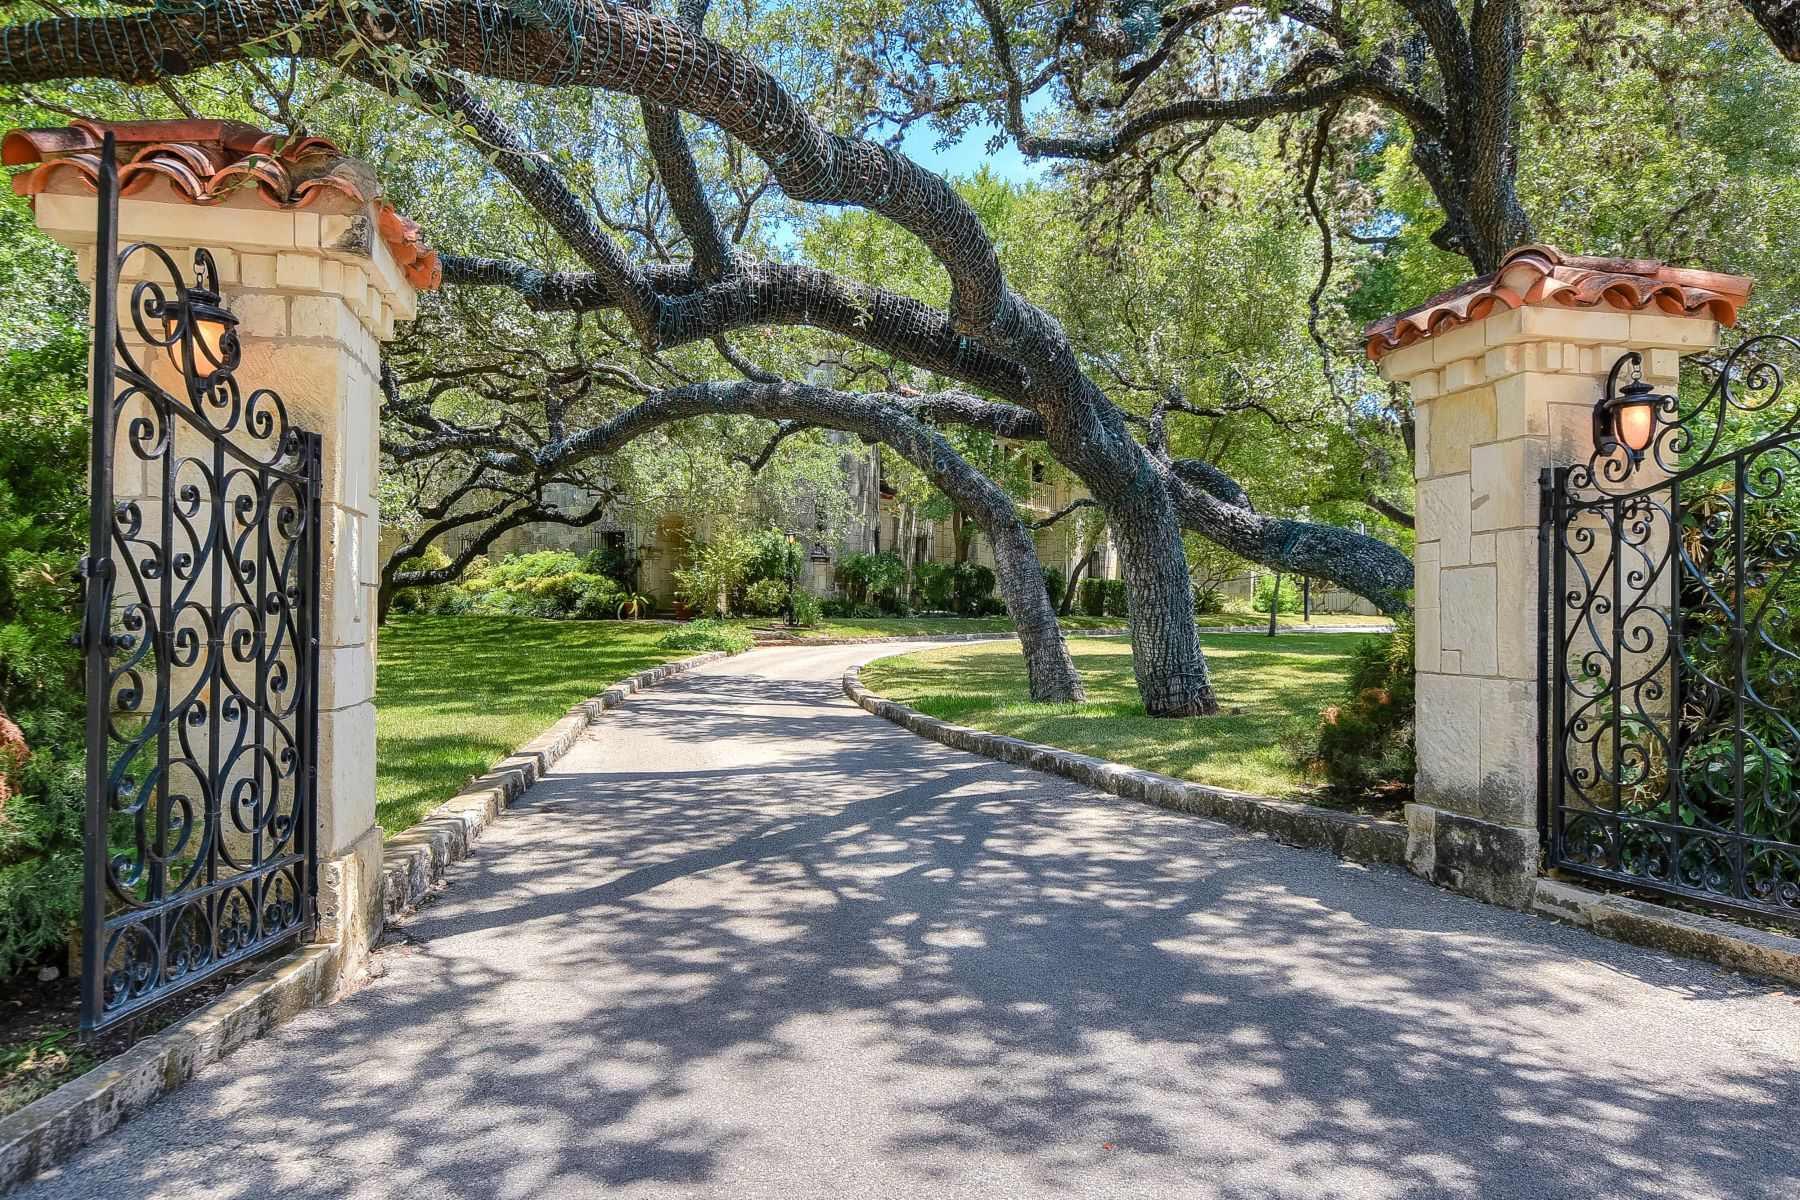 Casa Unifamiliar por un Venta en Grand Estate in Monte Vista 410 E Rosewood Ave San Antonio, Texas, 78212 Estados Unidos